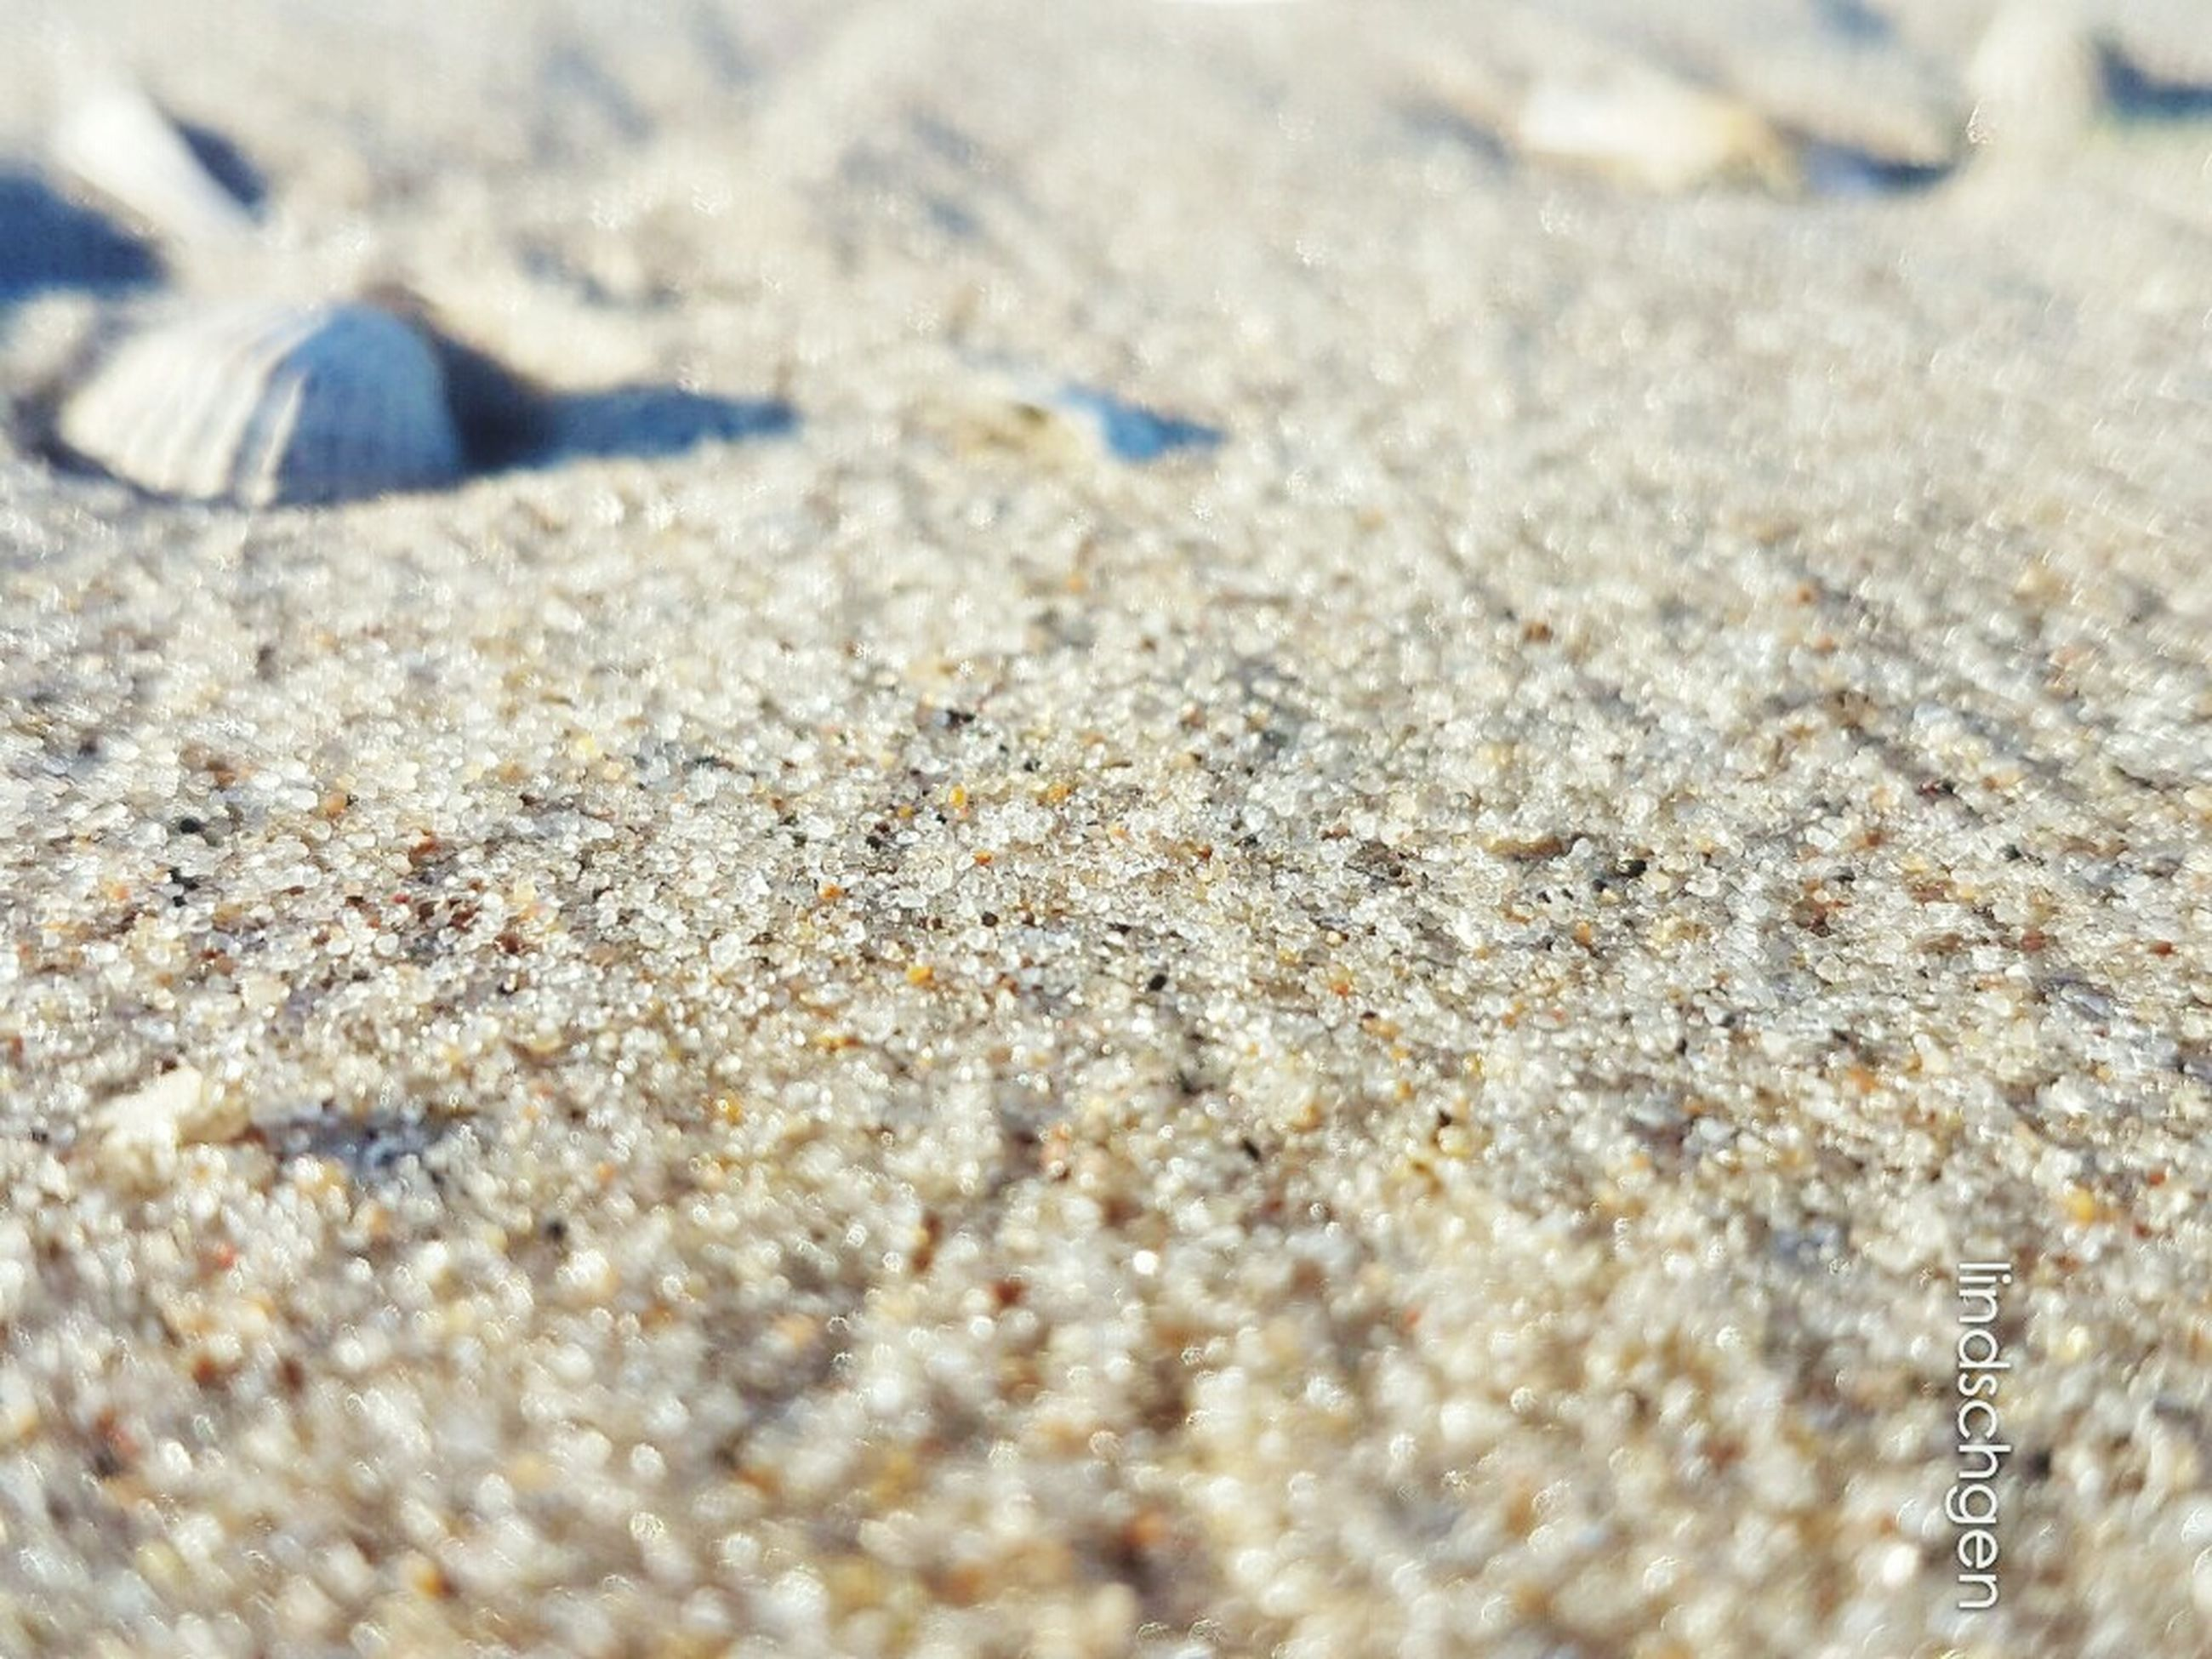 sand, selective focus, surface level, nature, blue, day, outdoors, summer, non-urban scene, tranquility, shore, beauty in nature, full frame, vacations, scenics, tranquil scene, no people